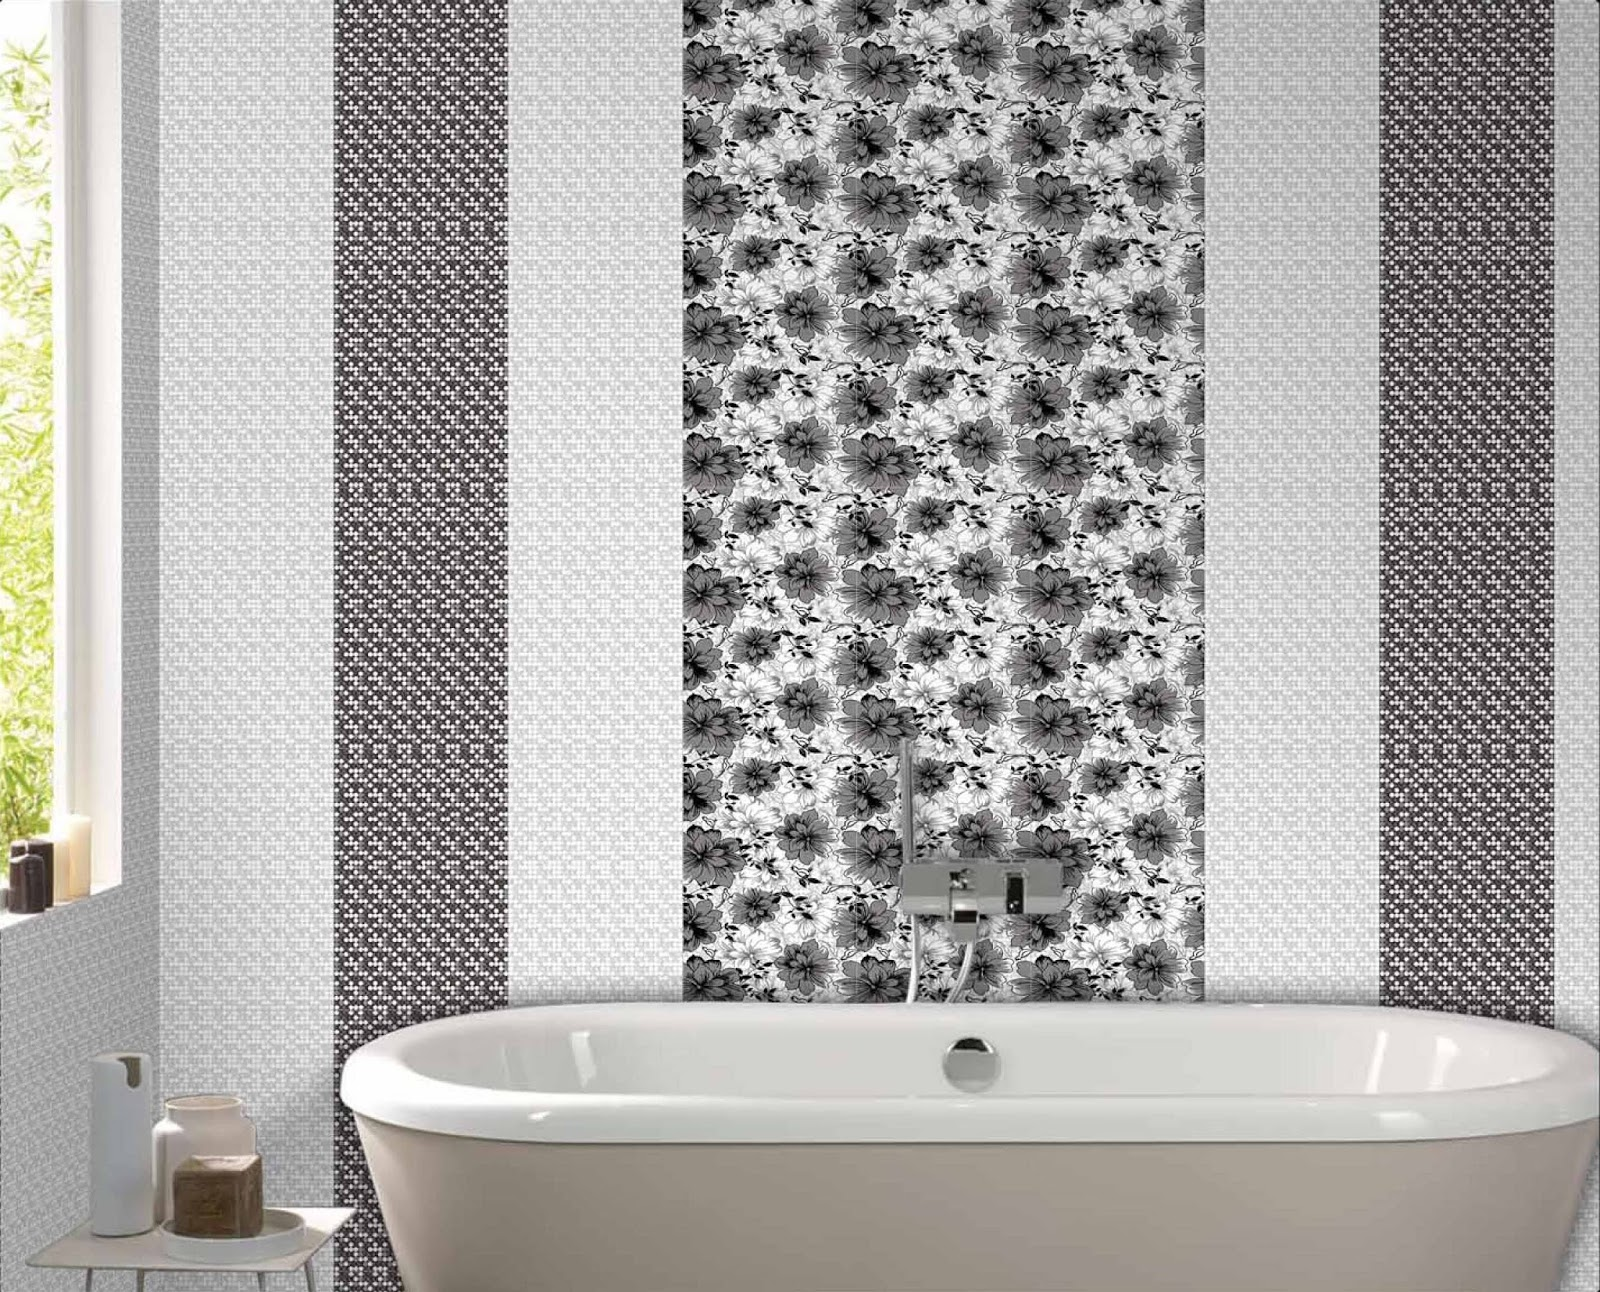 Tiles Hub Bathroom Ideas Digital Wall Tiles